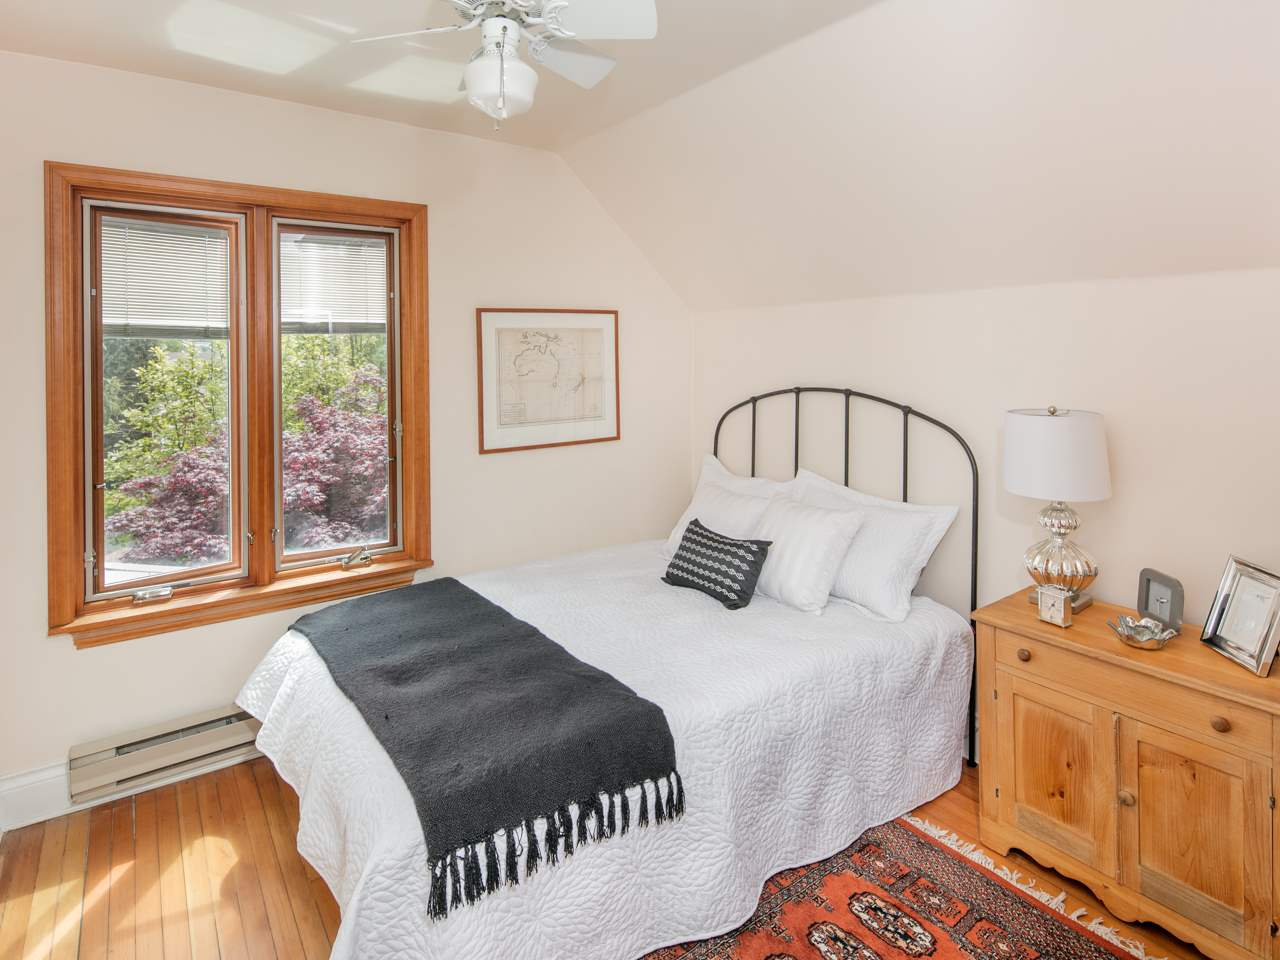 Photo 10: 748 UNION Street in Vancouver: Mount Pleasant VE House for sale (Vancouver East)  : MLS® # R2168904